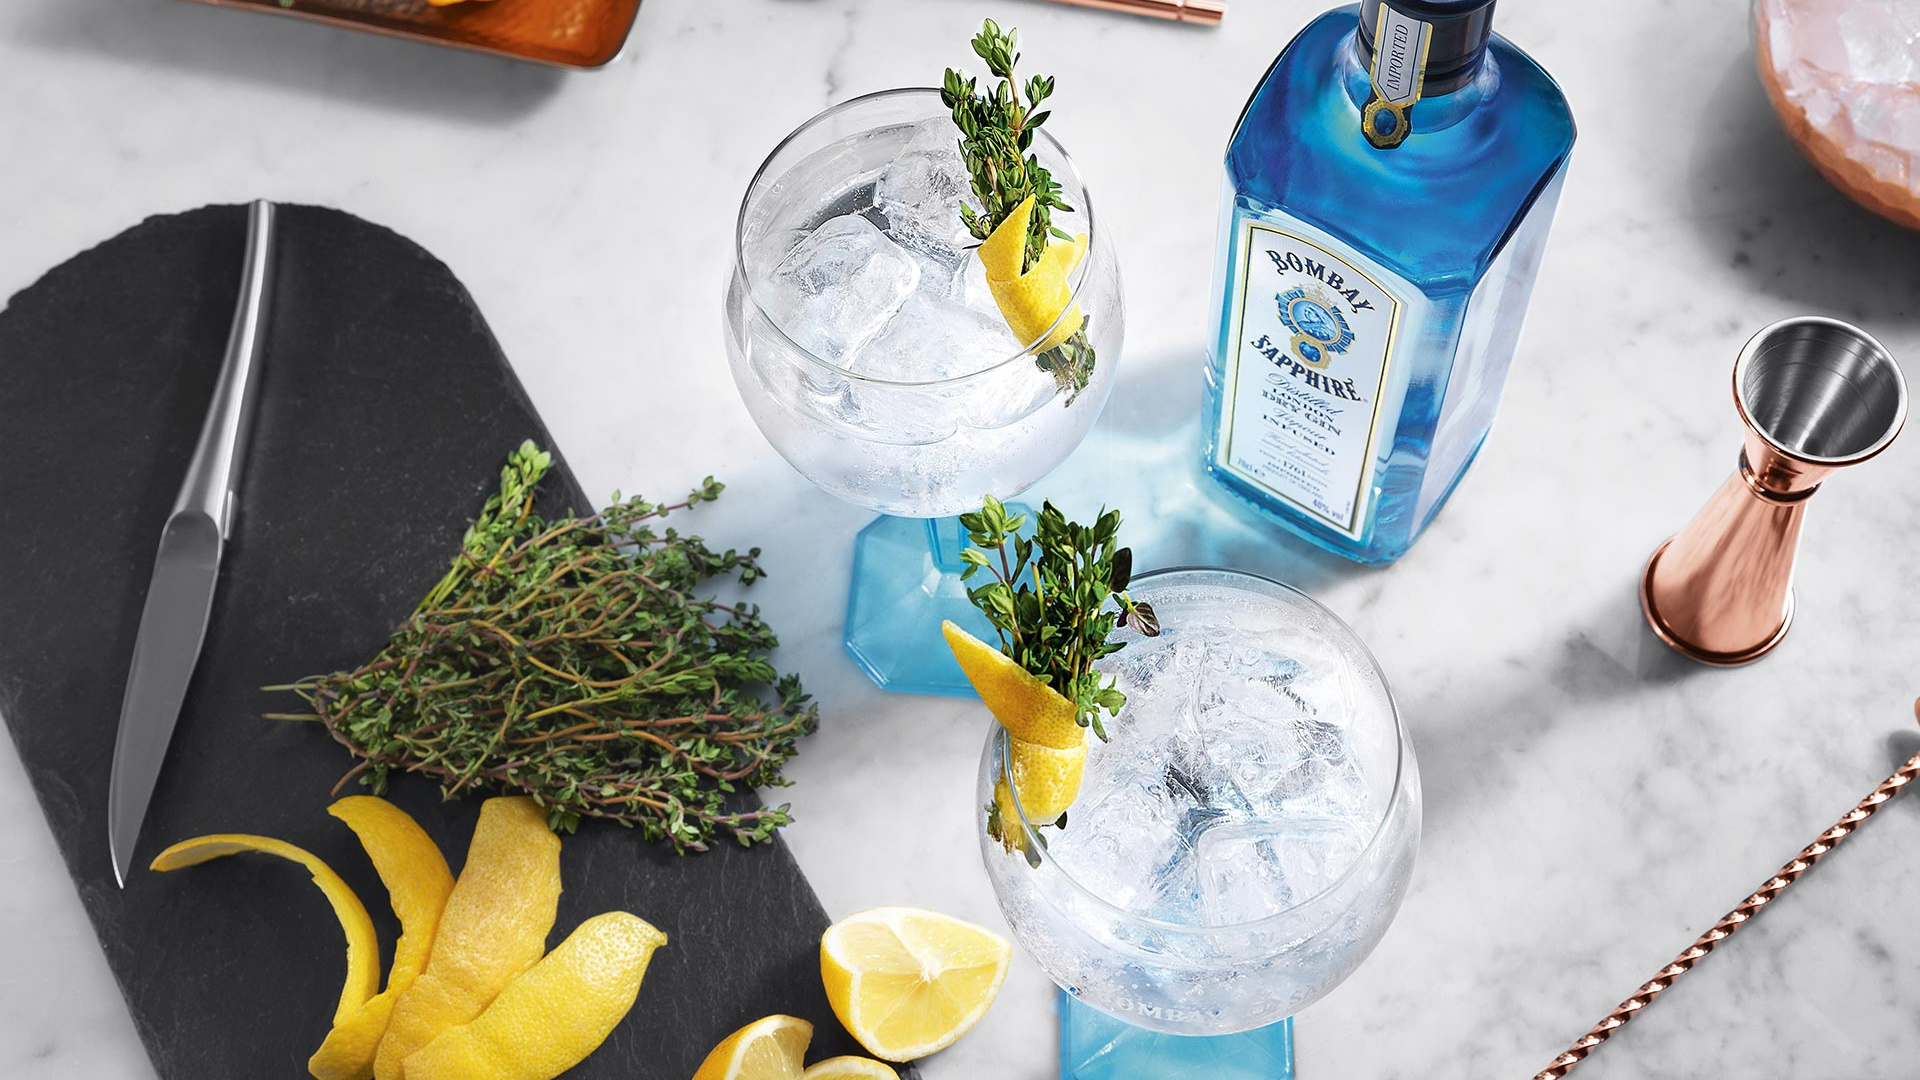 Bombay Sapphire gin and tonic with garnish